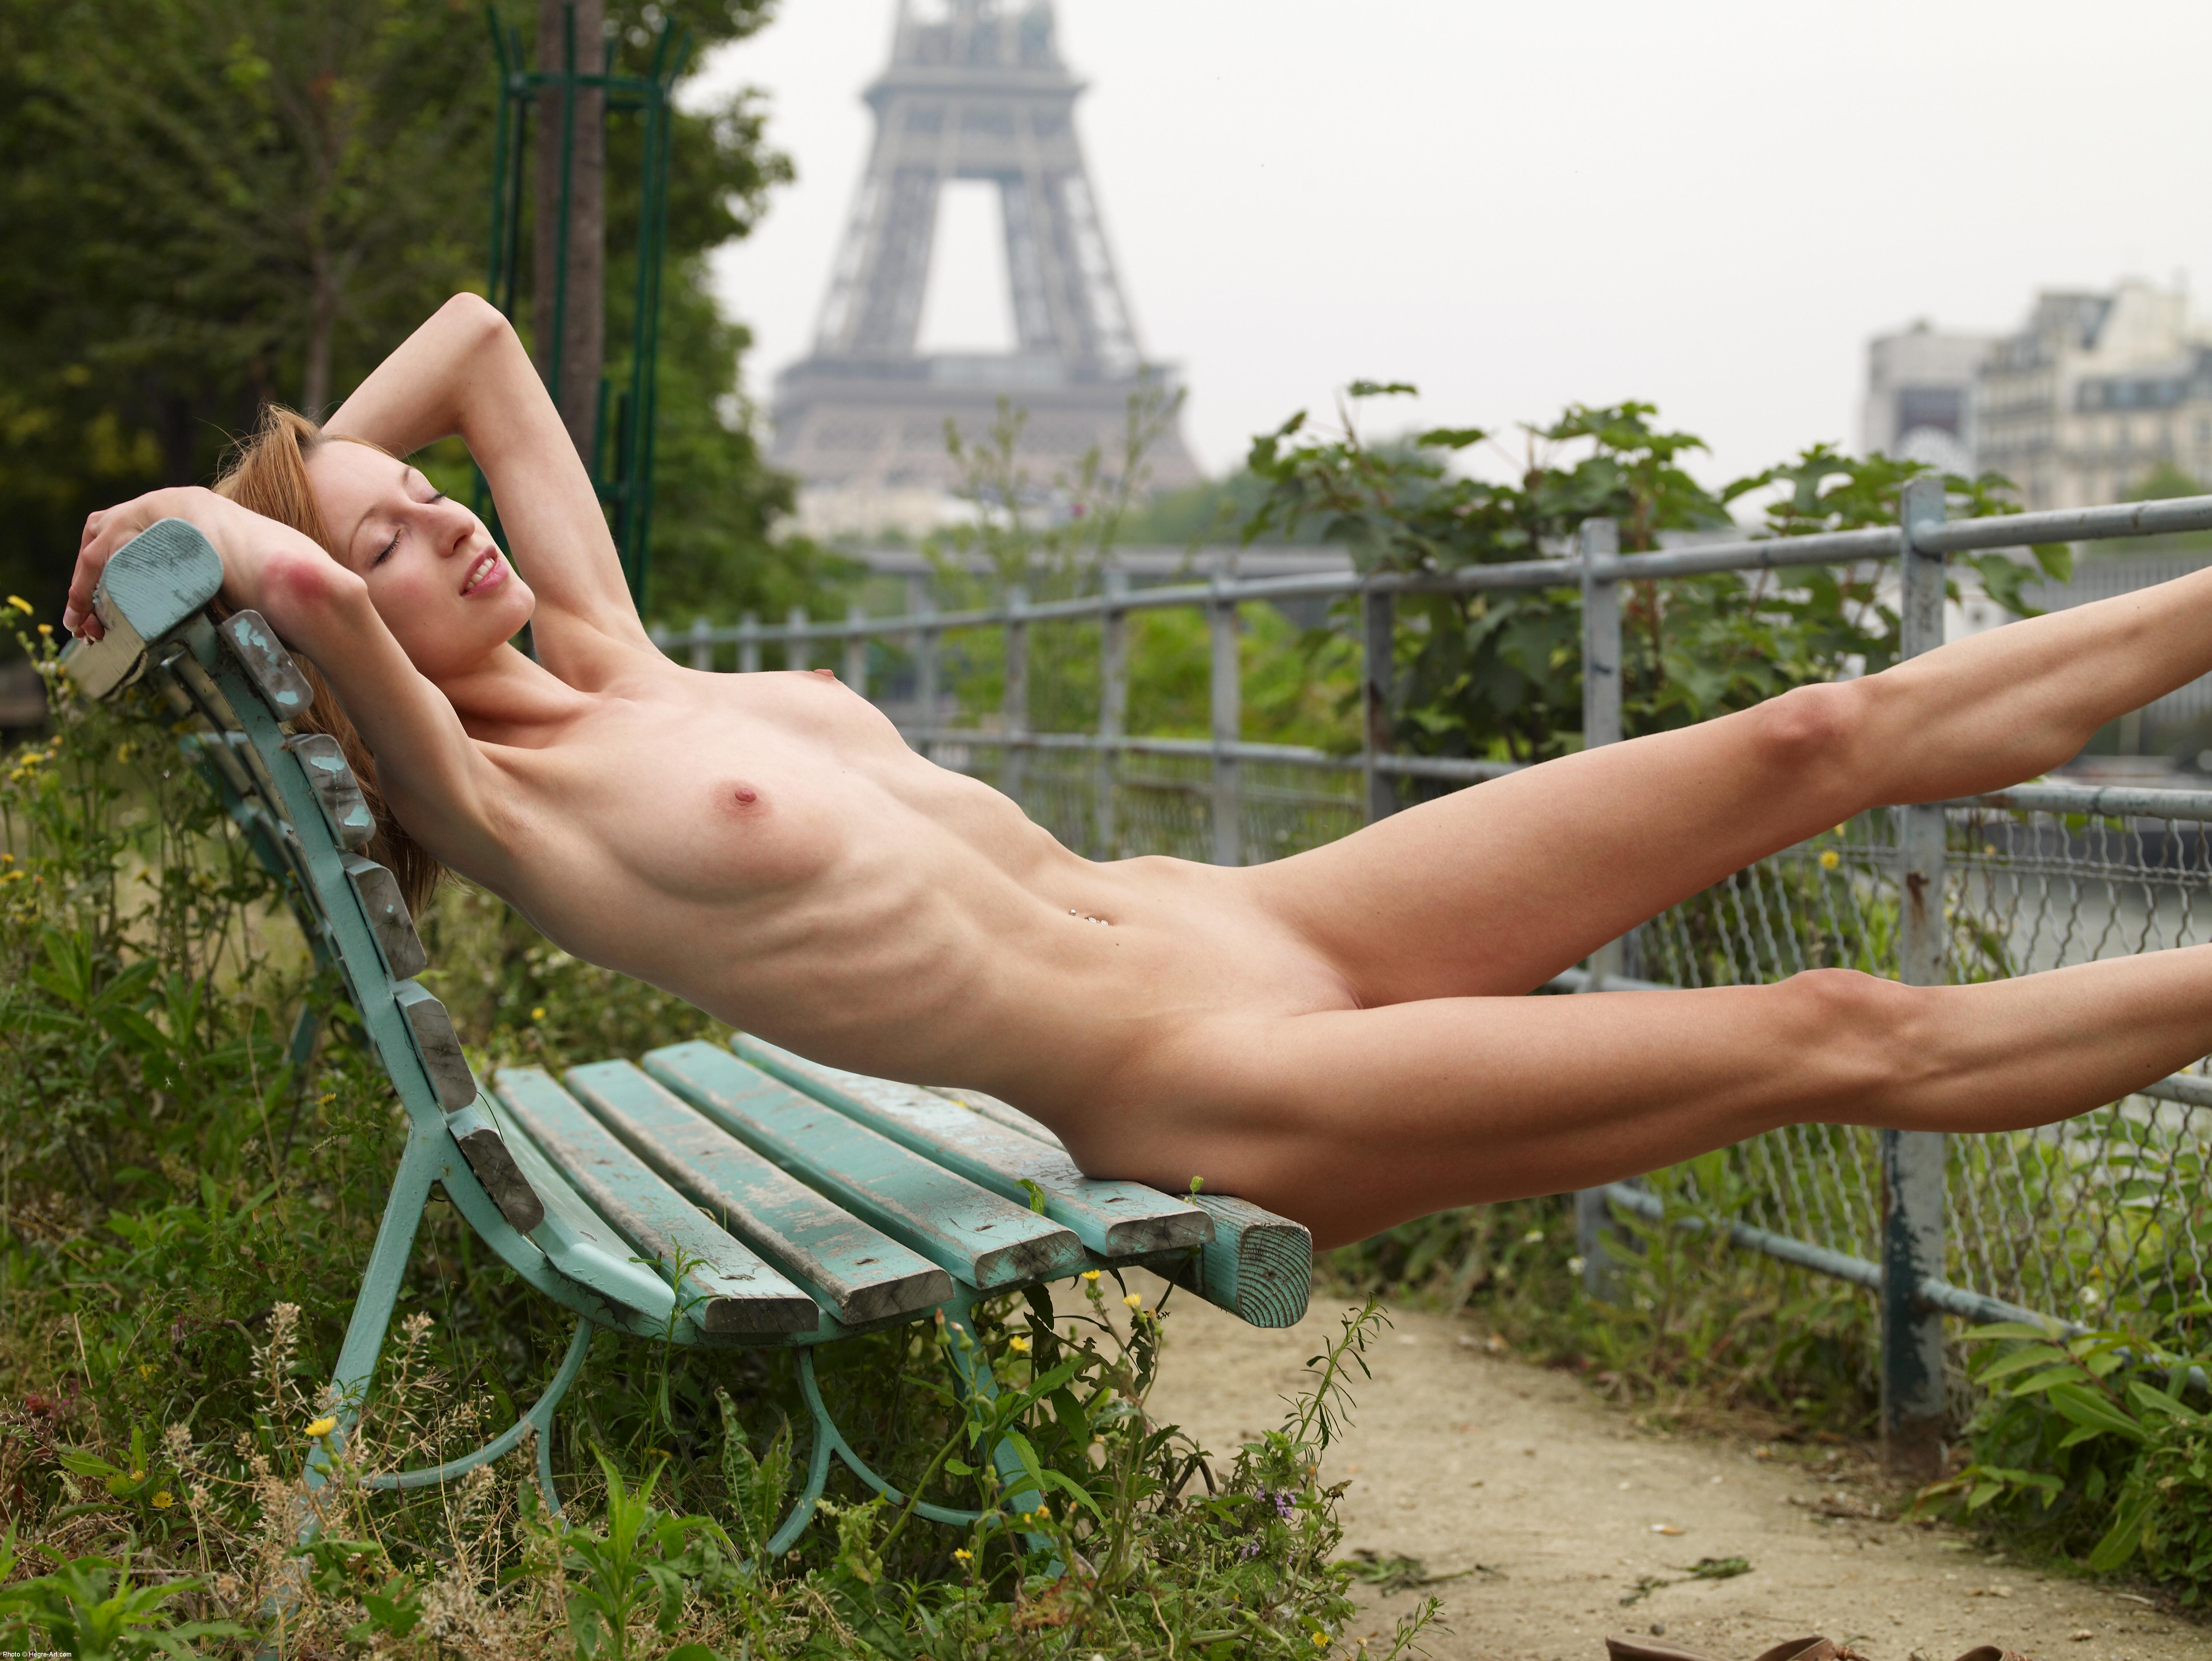 Paris of the naked in public cannot